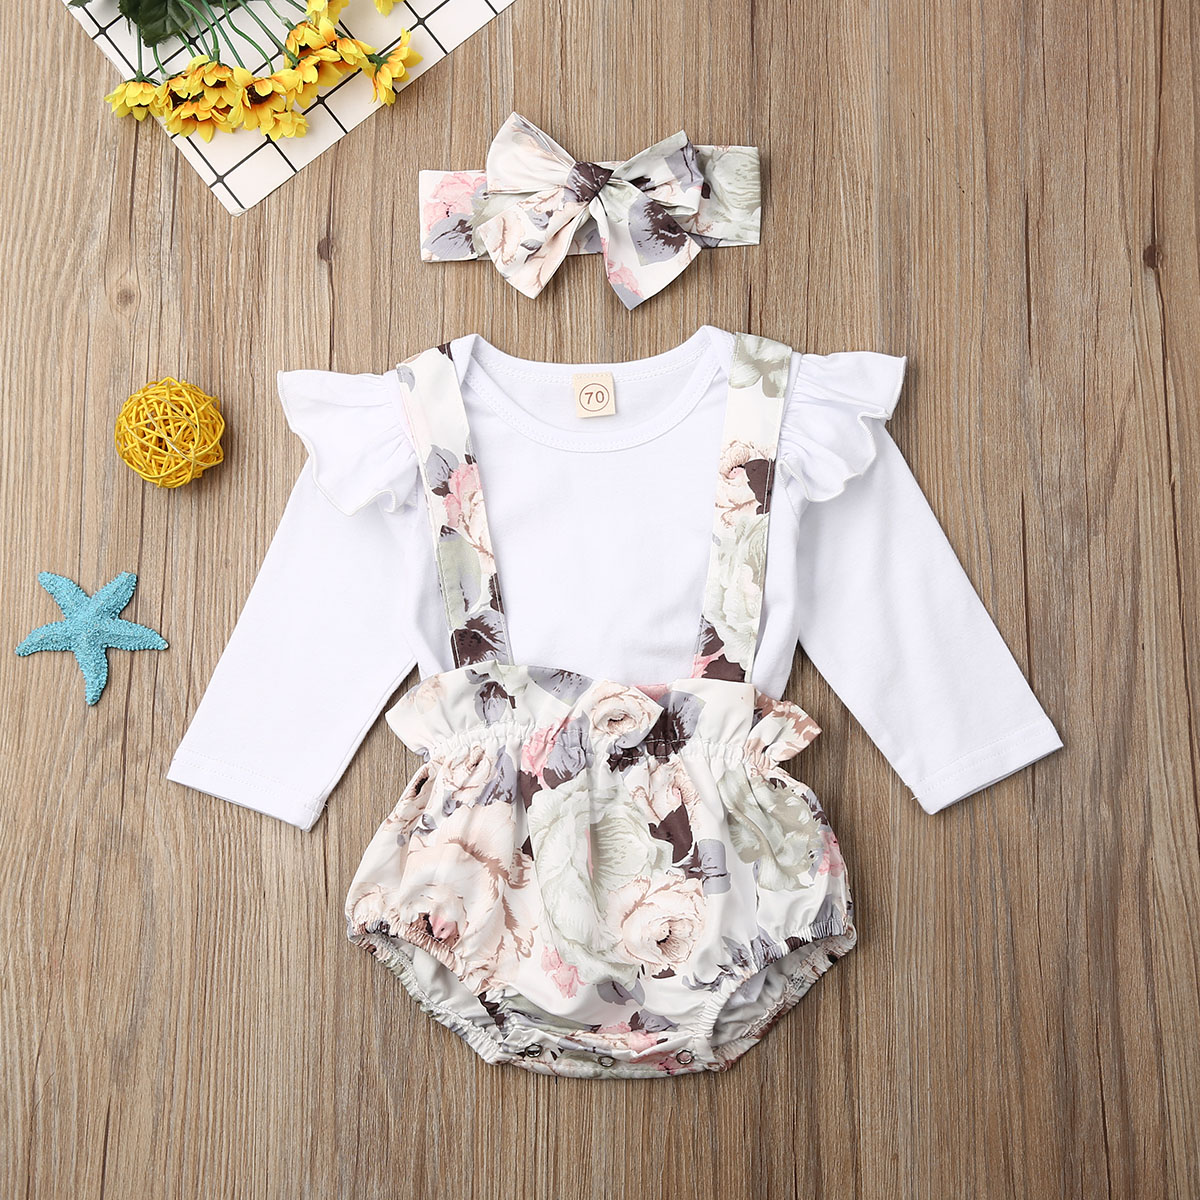 Pudcoco Newborn Baby Girl Clothes Solid Color Long Sleeve Romper Tops Strap Flower Print Short Pants Headband 3Pcs Outfits Set